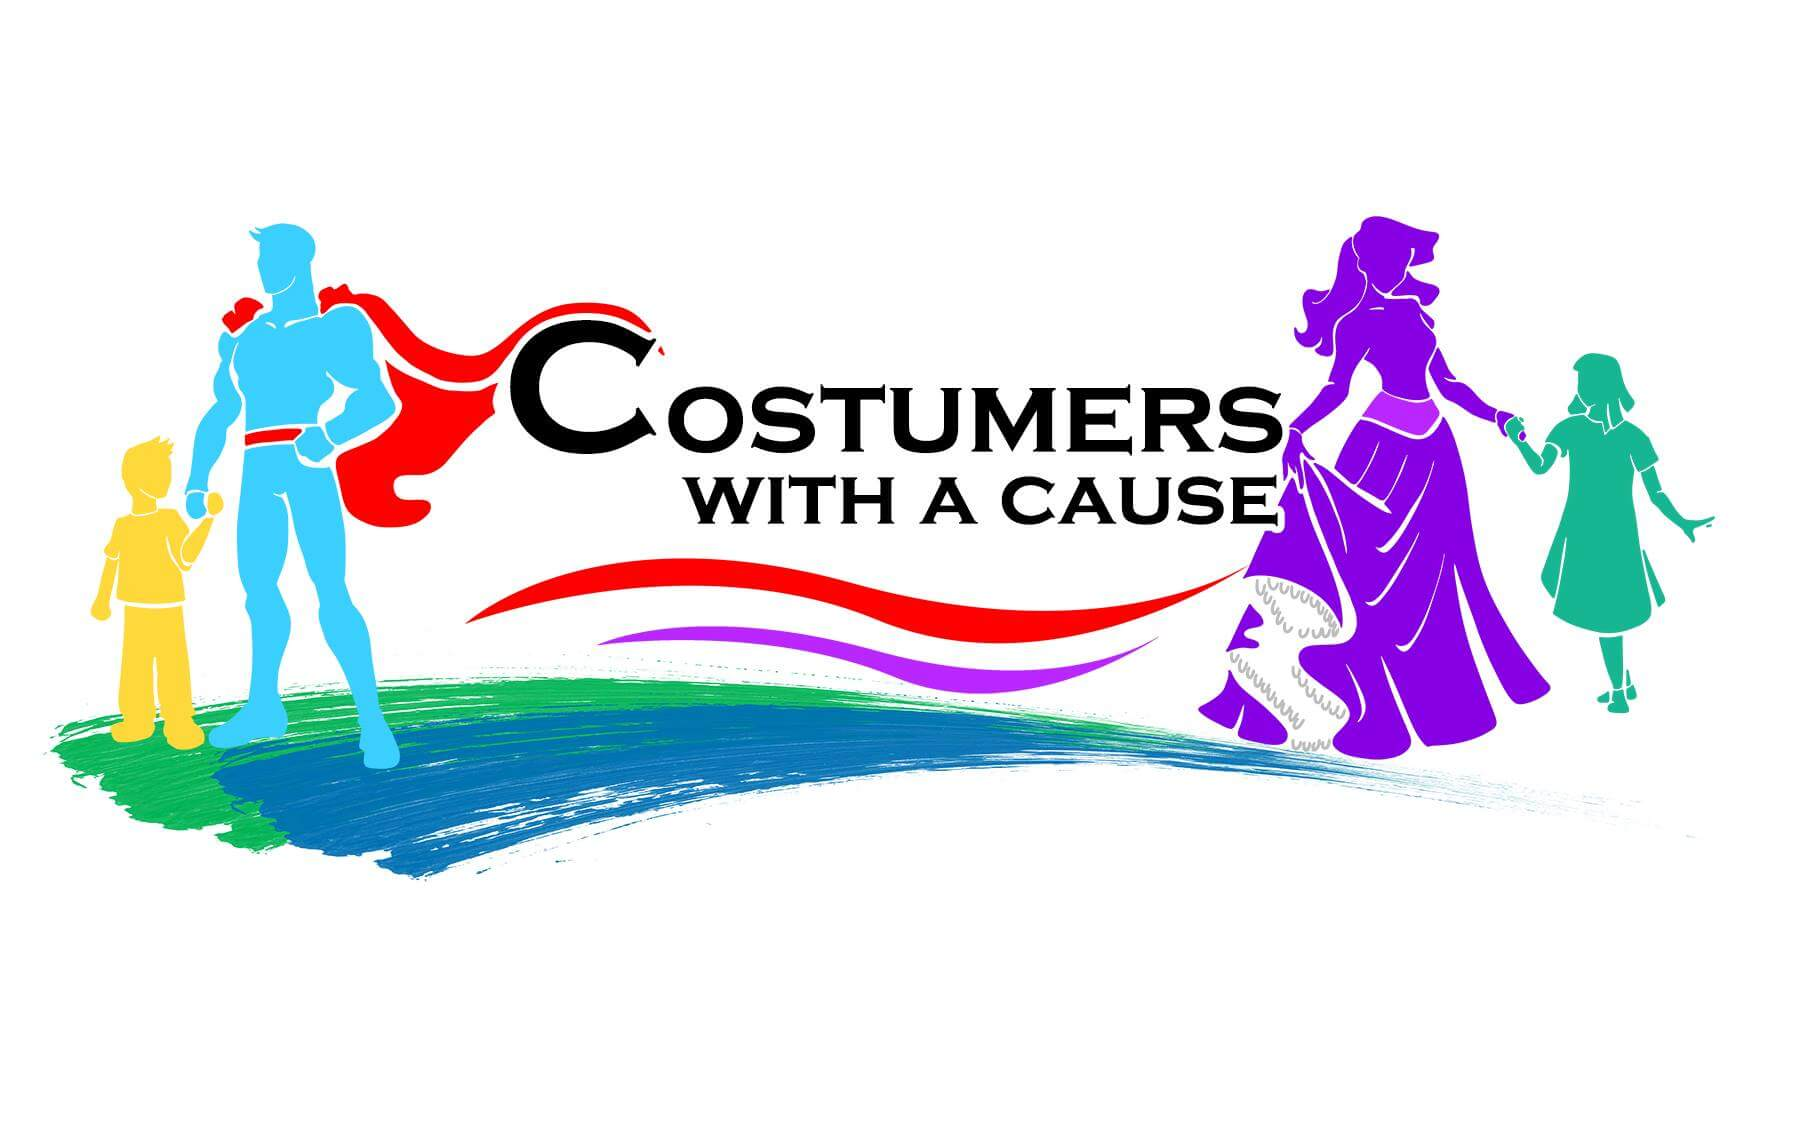 The logo for Costumers with a Cause shows superhero and pricness silhouettes interacting with children